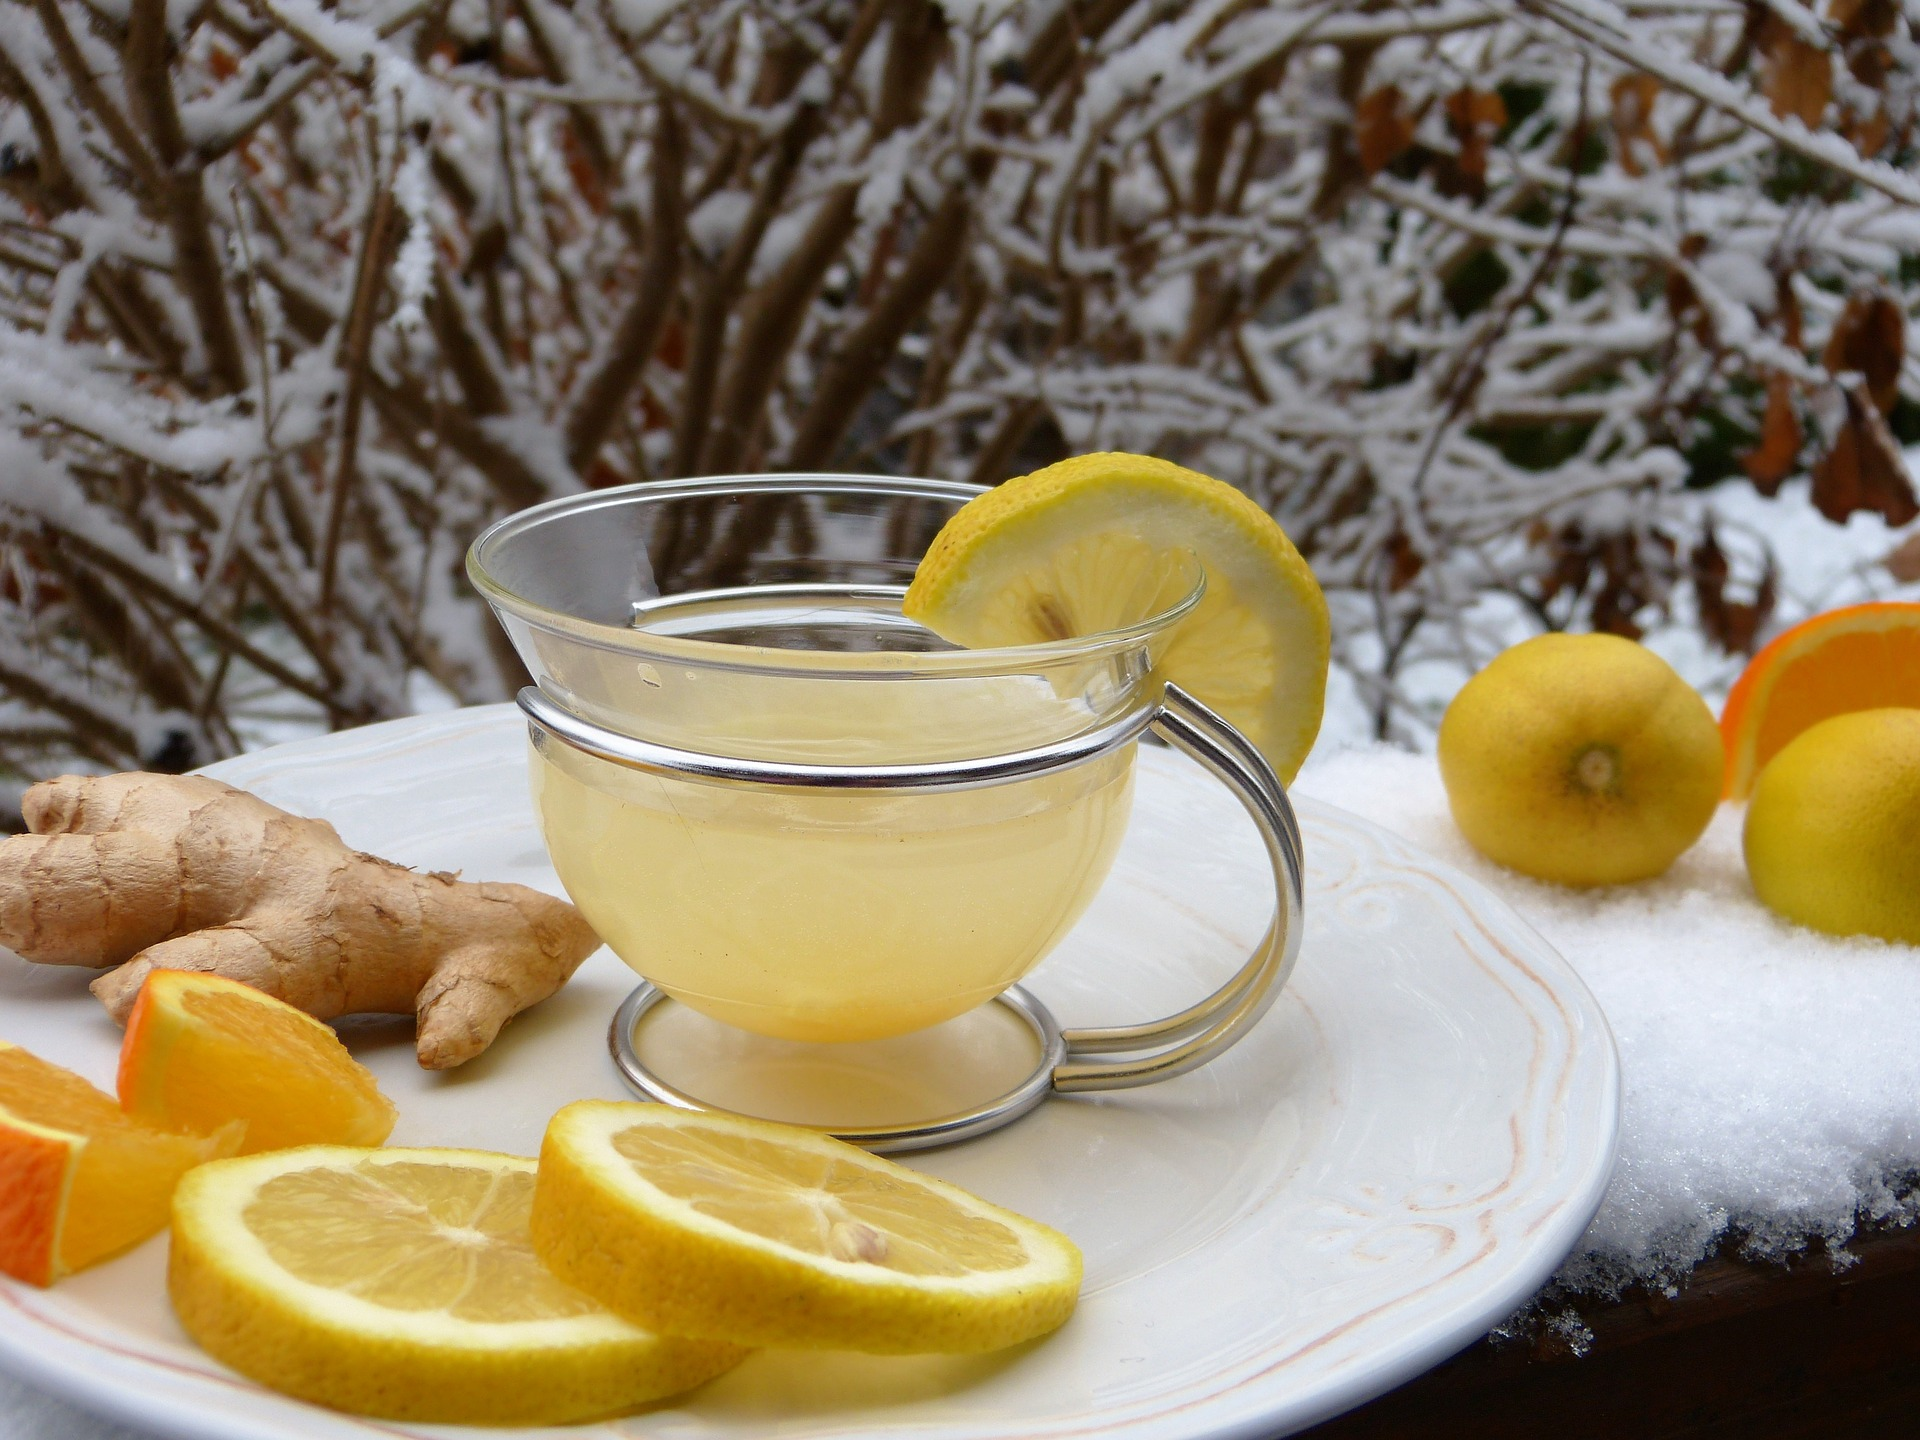 Home remedies for colds – part 2